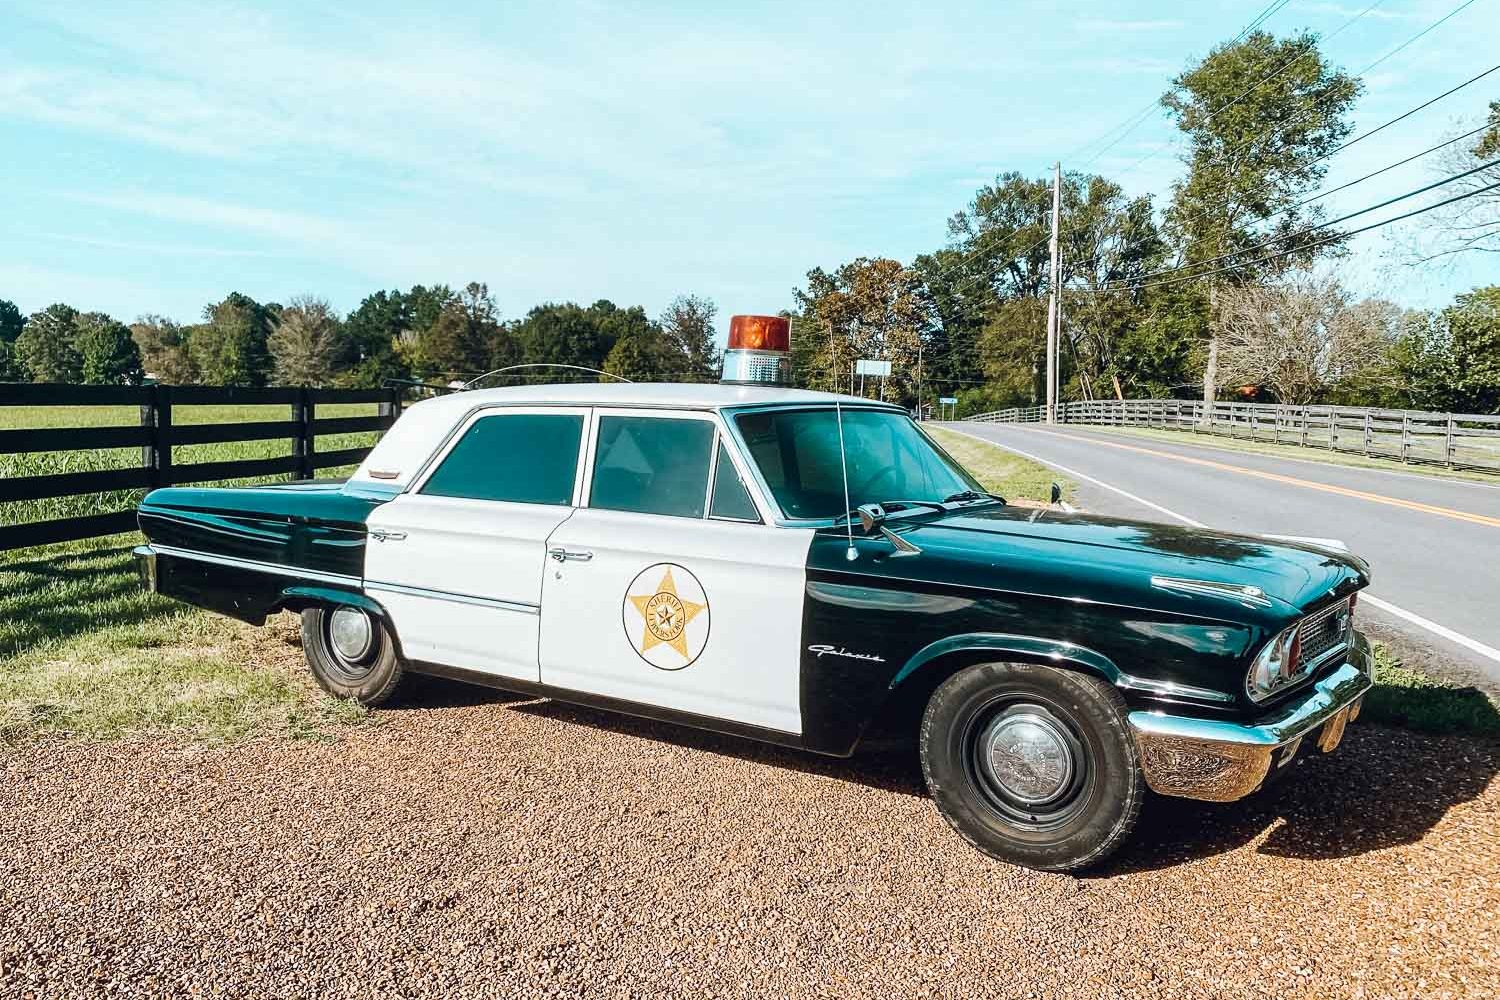 Things to do in Leiper's Fork - An old-fashioned cop car sitting on the side of the road - bucket list travel